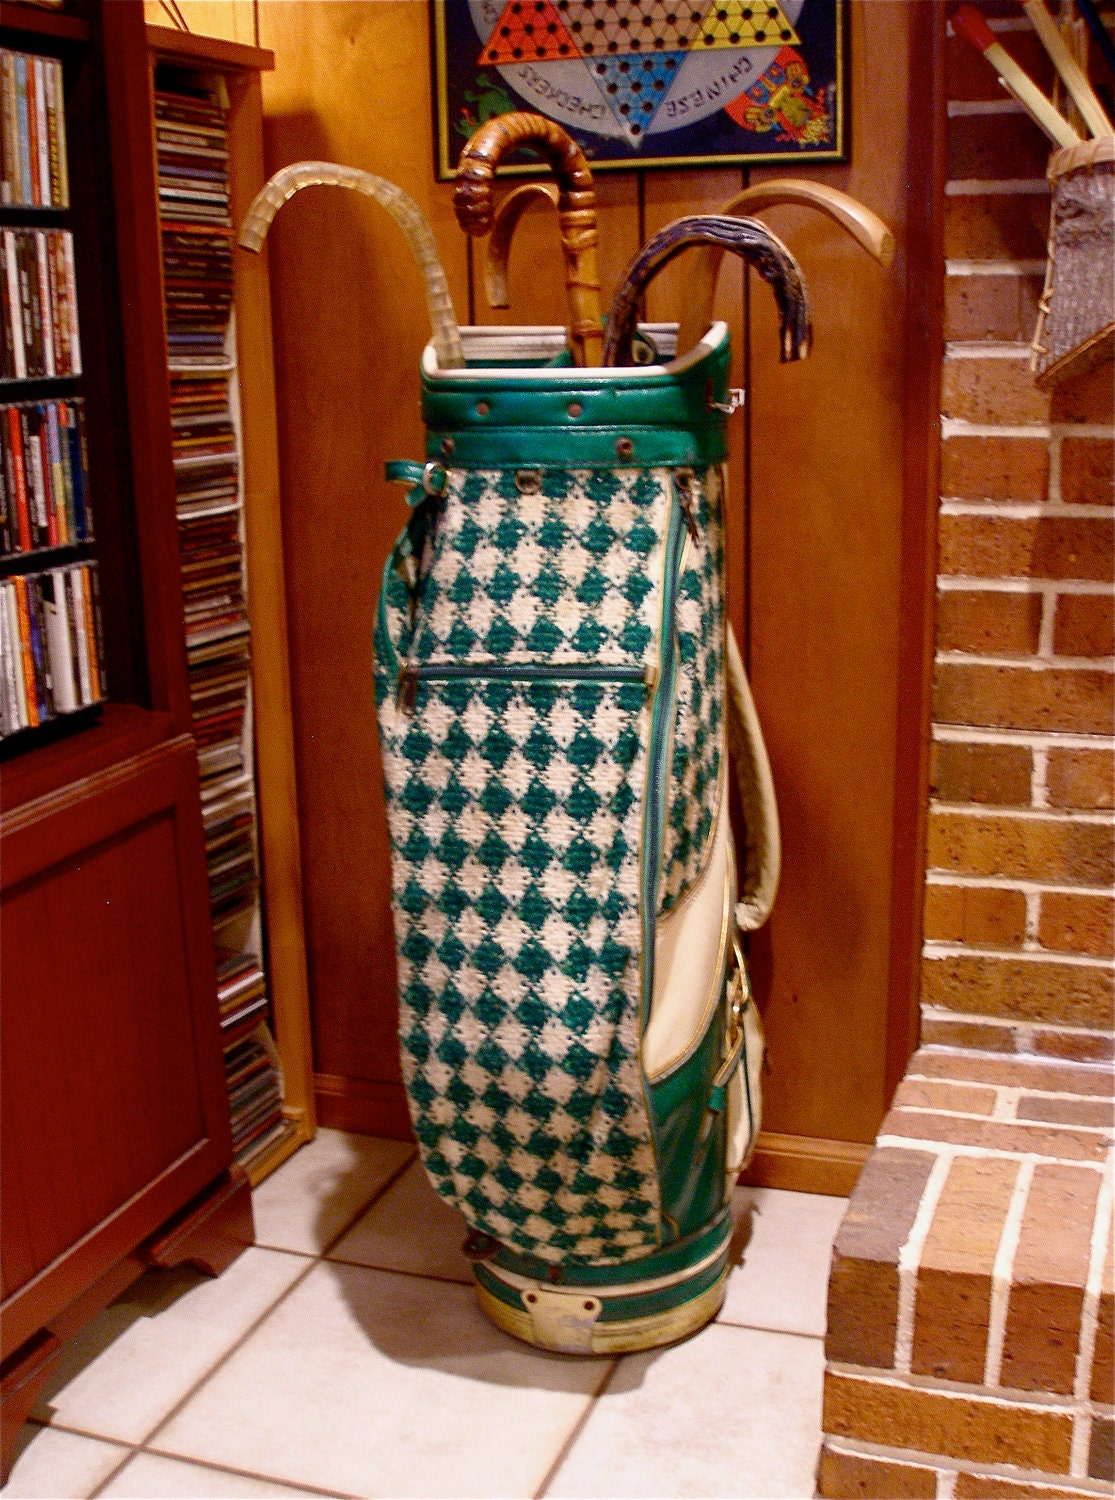 Funky Green Plaid Golf Bag By Walter Hagen 60 S 70 S